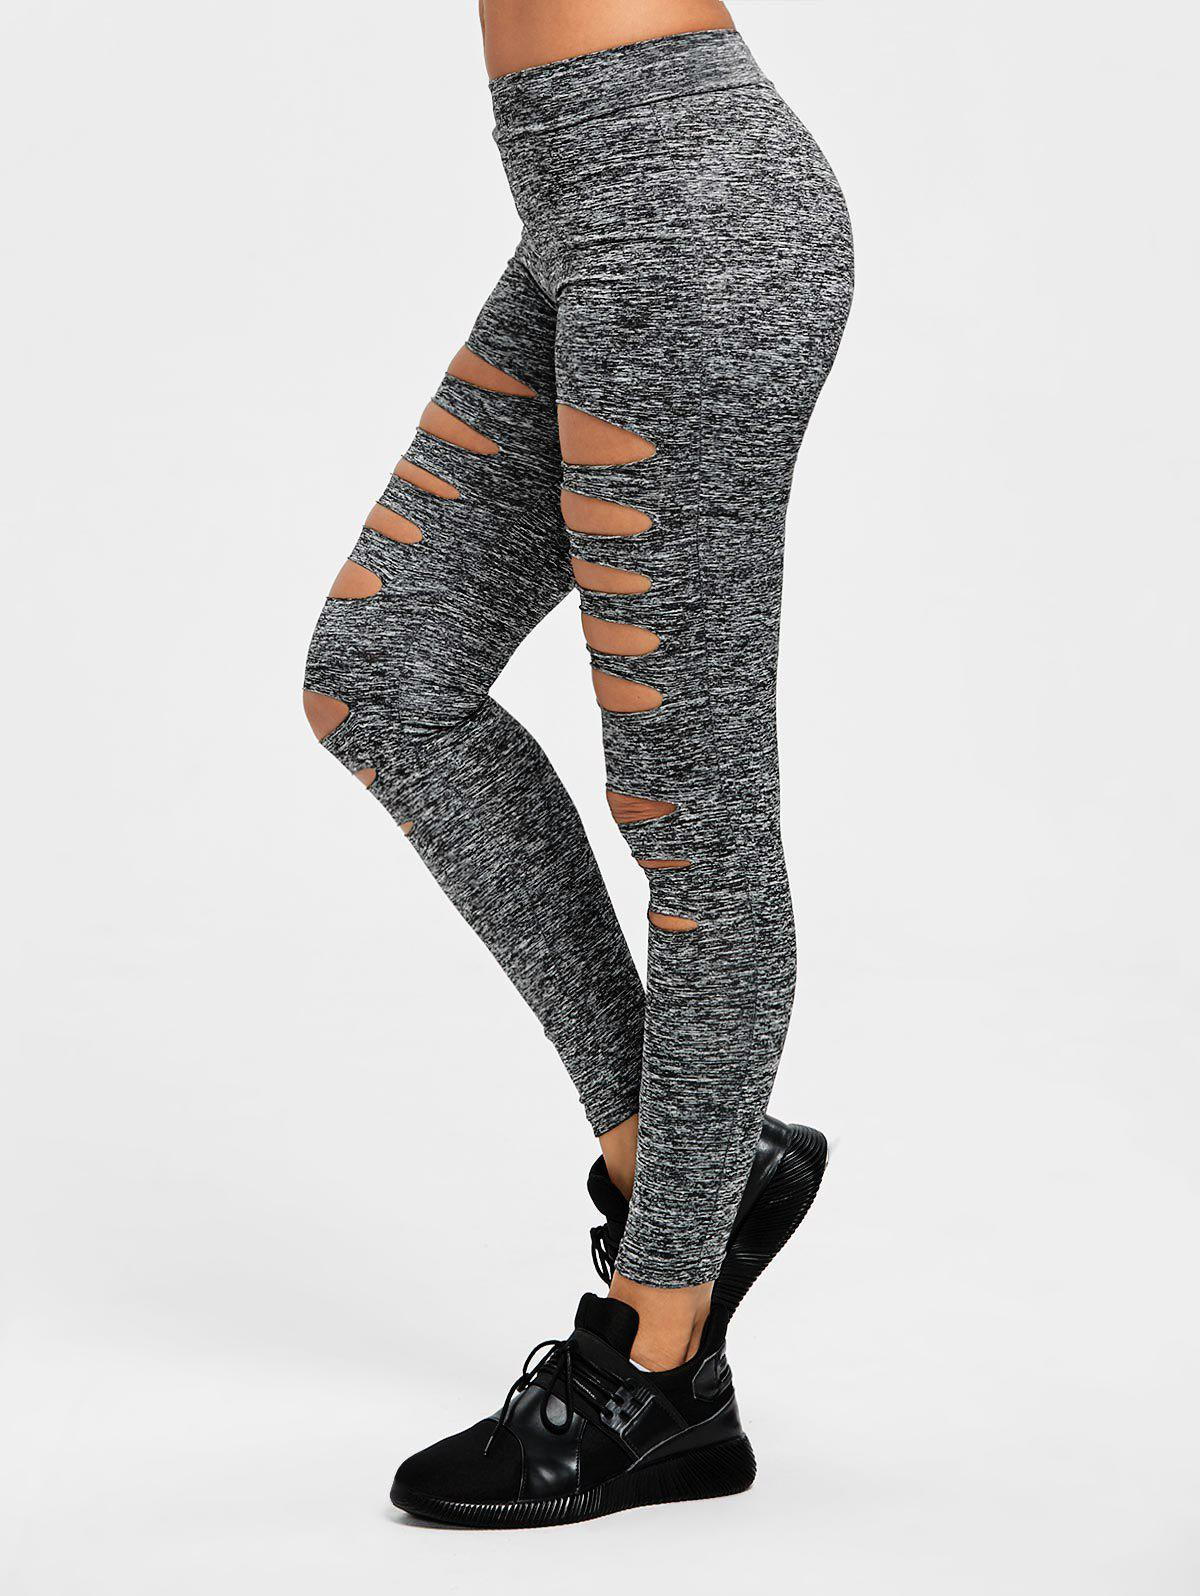 Cheap Marled Ladder Shredding Gym Leggings